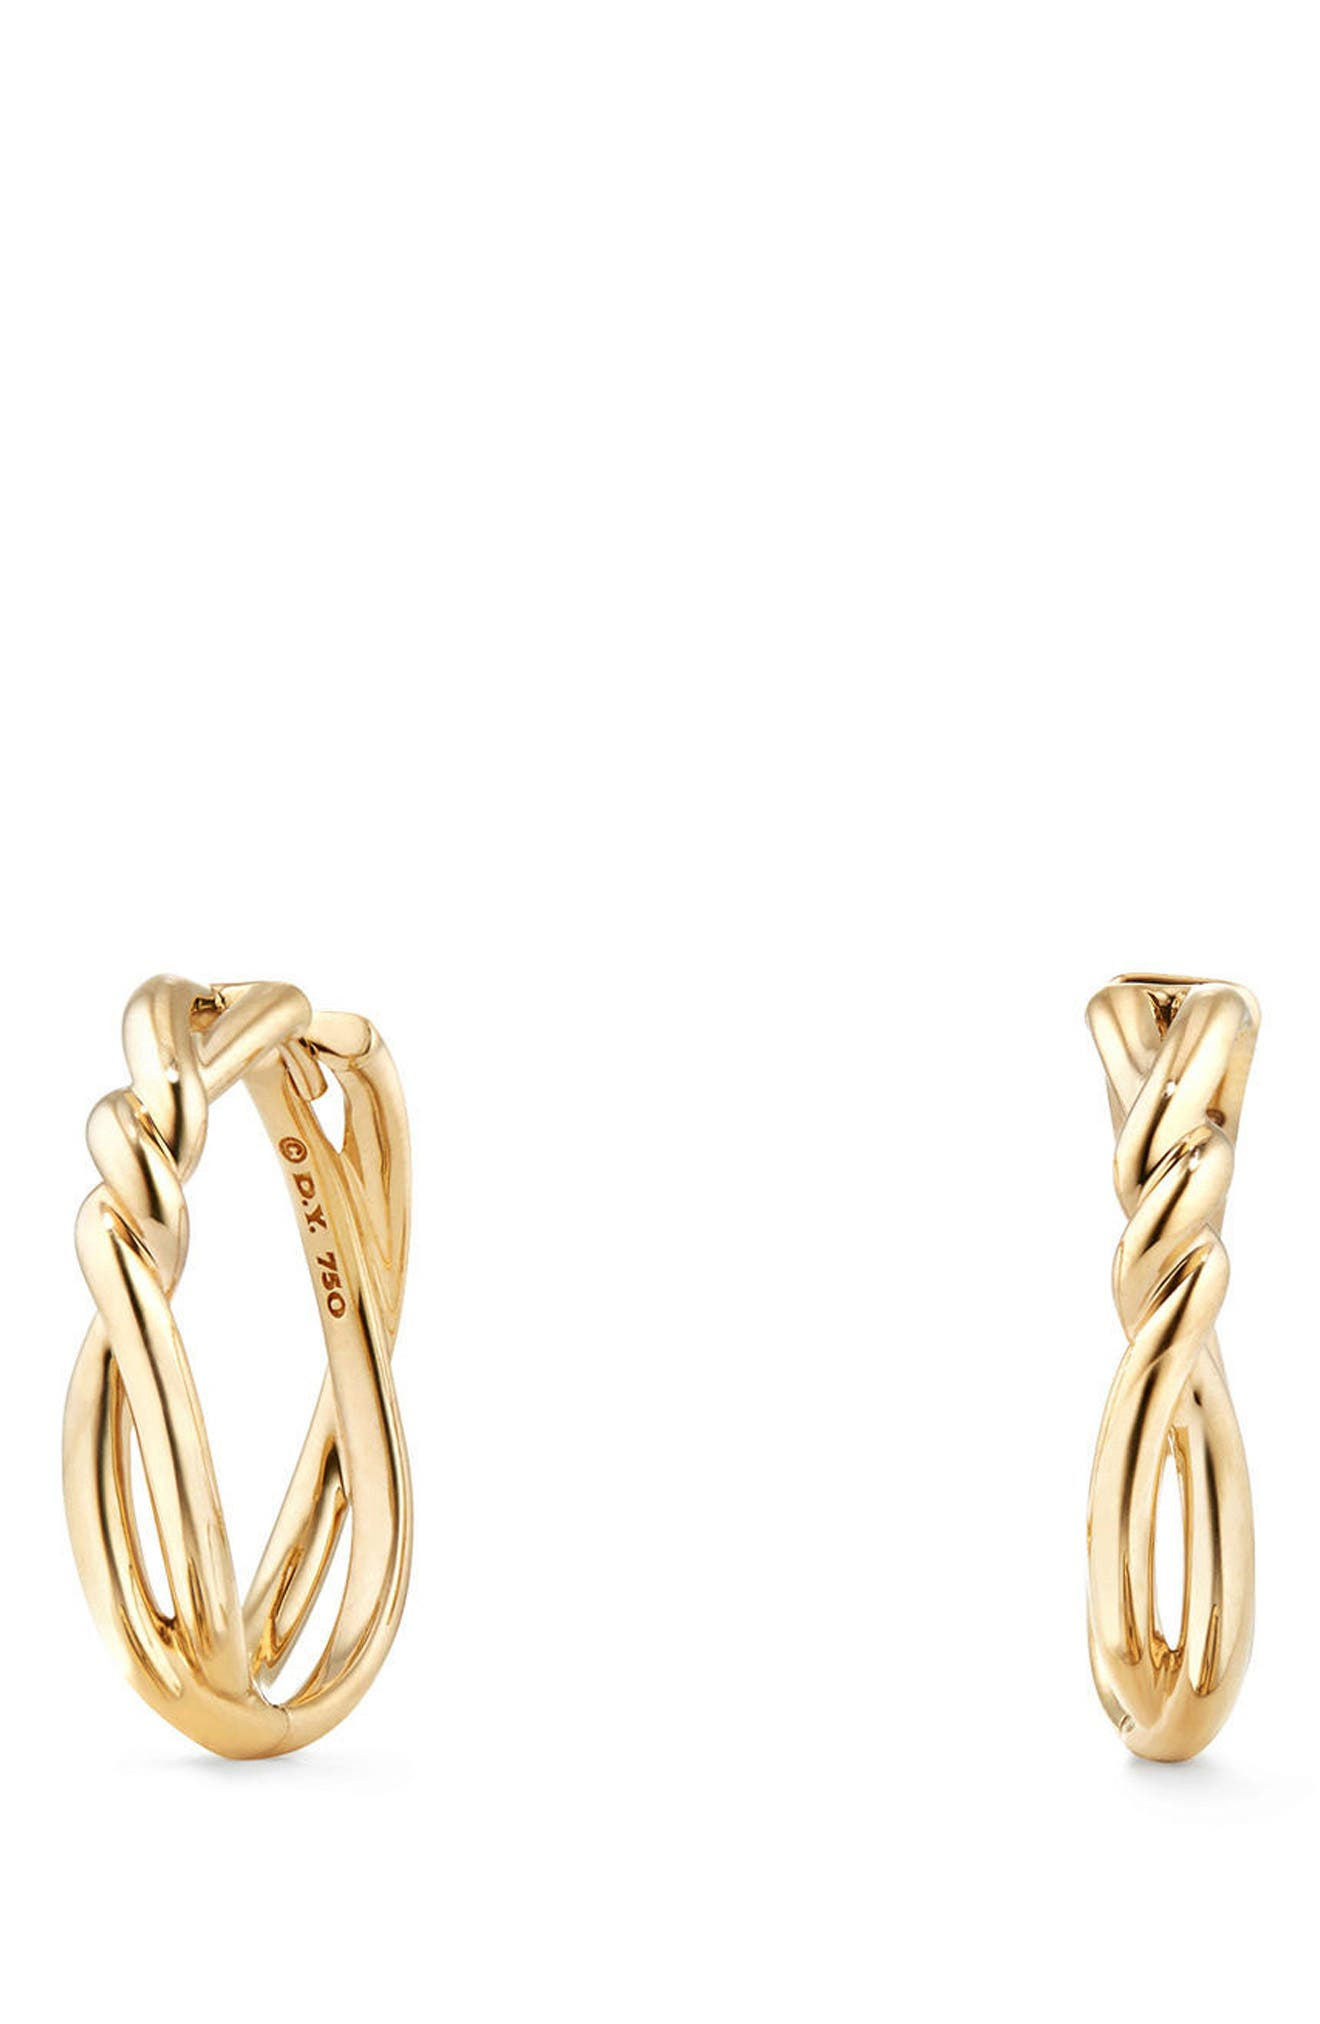 Continuance Hoop Earrings,                             Alternate thumbnail 3, color,                             GOLD